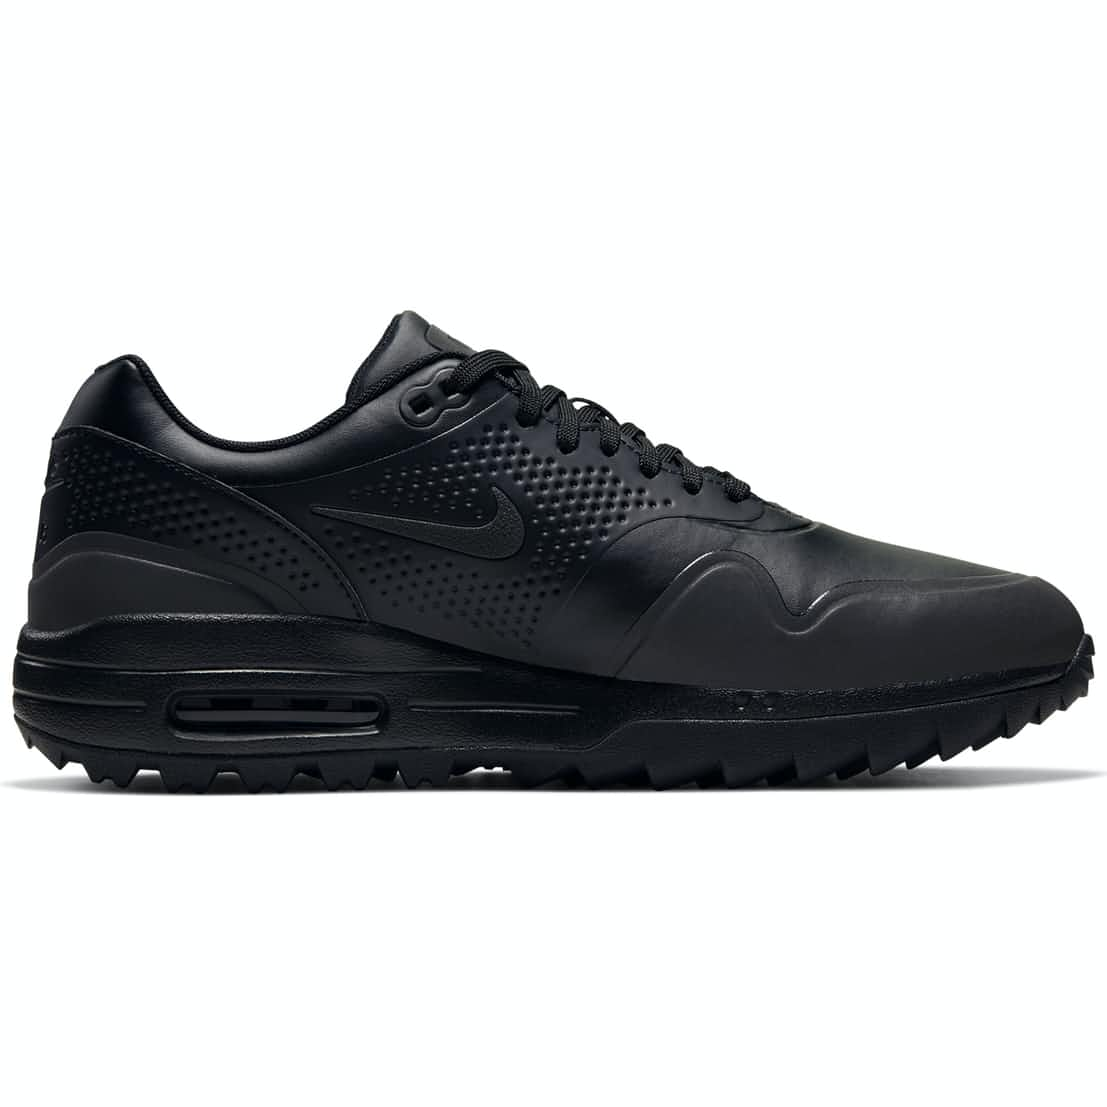 Air Max 1G Black/Black/Metallic Silver  - W19